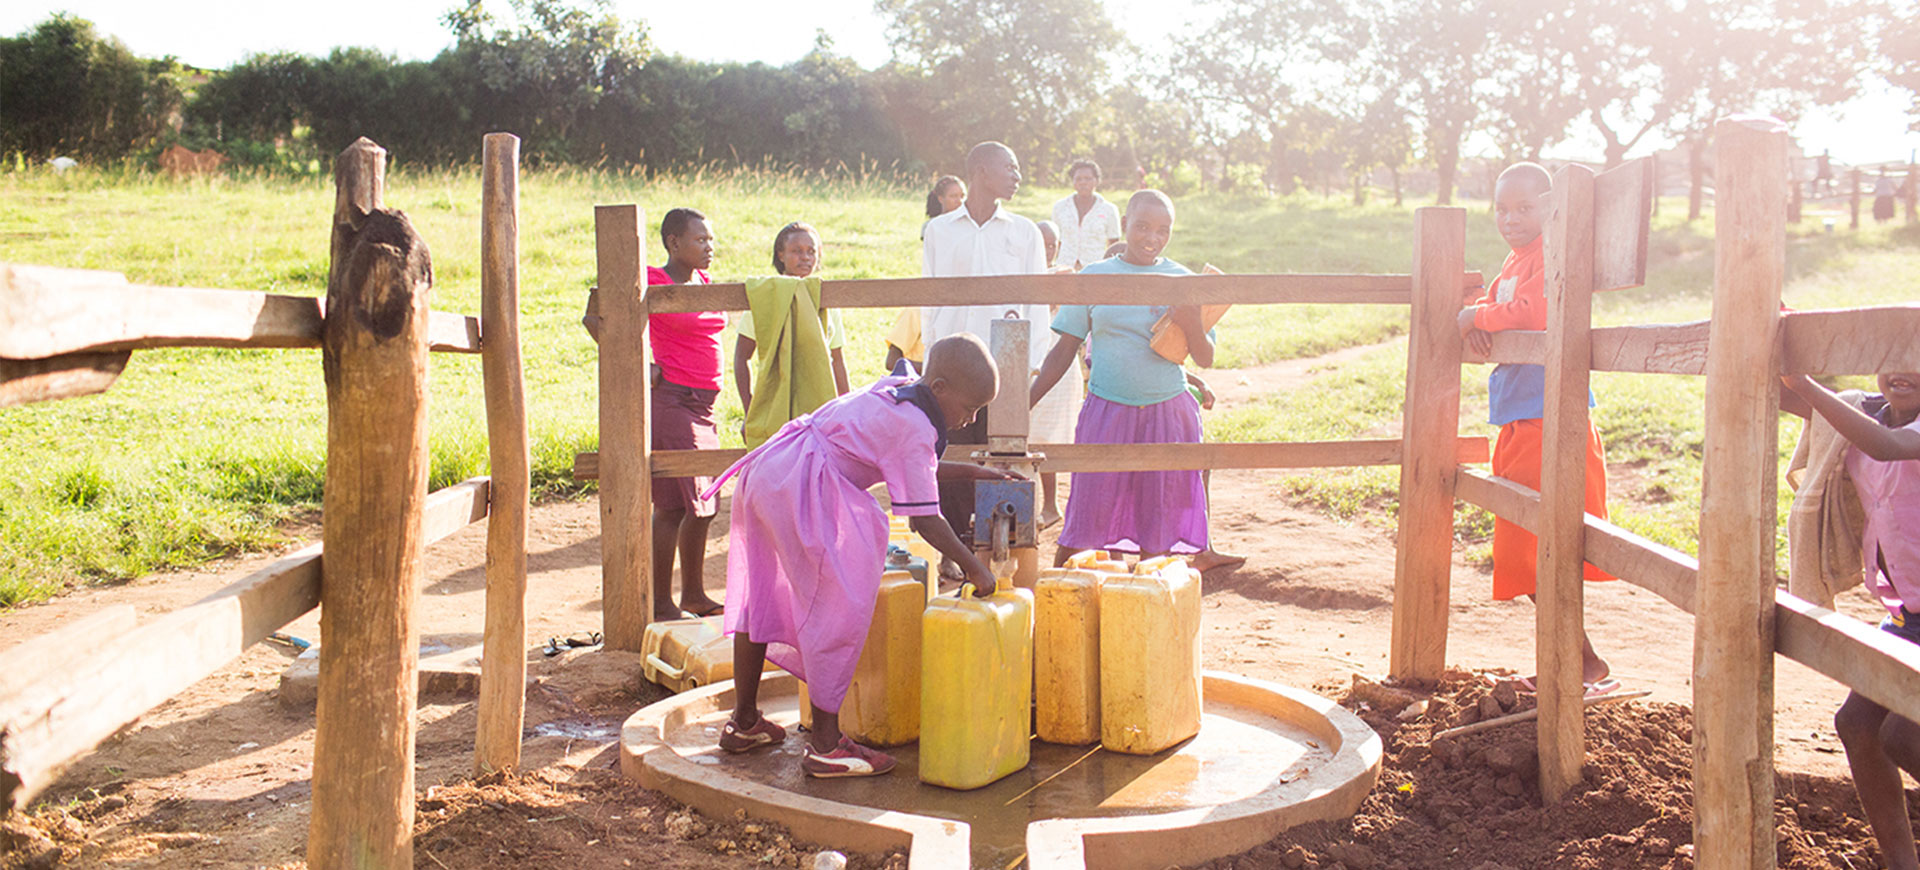 Young girl pumping water from well into water canister. Group of people in the background walking towards the well and standing on the fence surrounding the well.